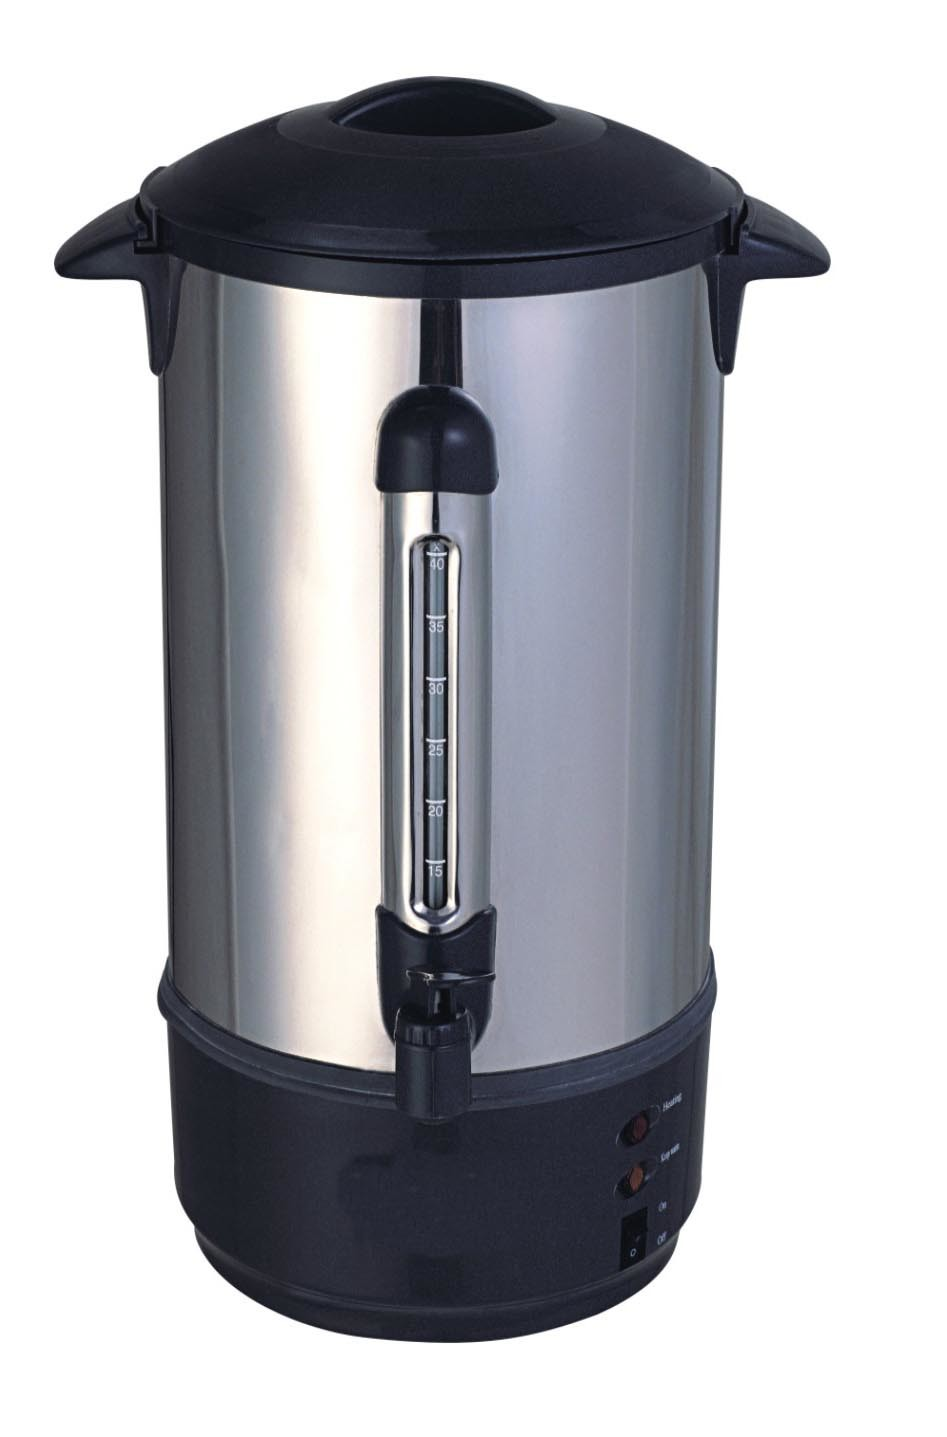 Coffee Maker Water Boiler Oxone : China Water Boiler, Coffee Maker (ZJ-68 ) - China Water Urn, Electric Water Boiler